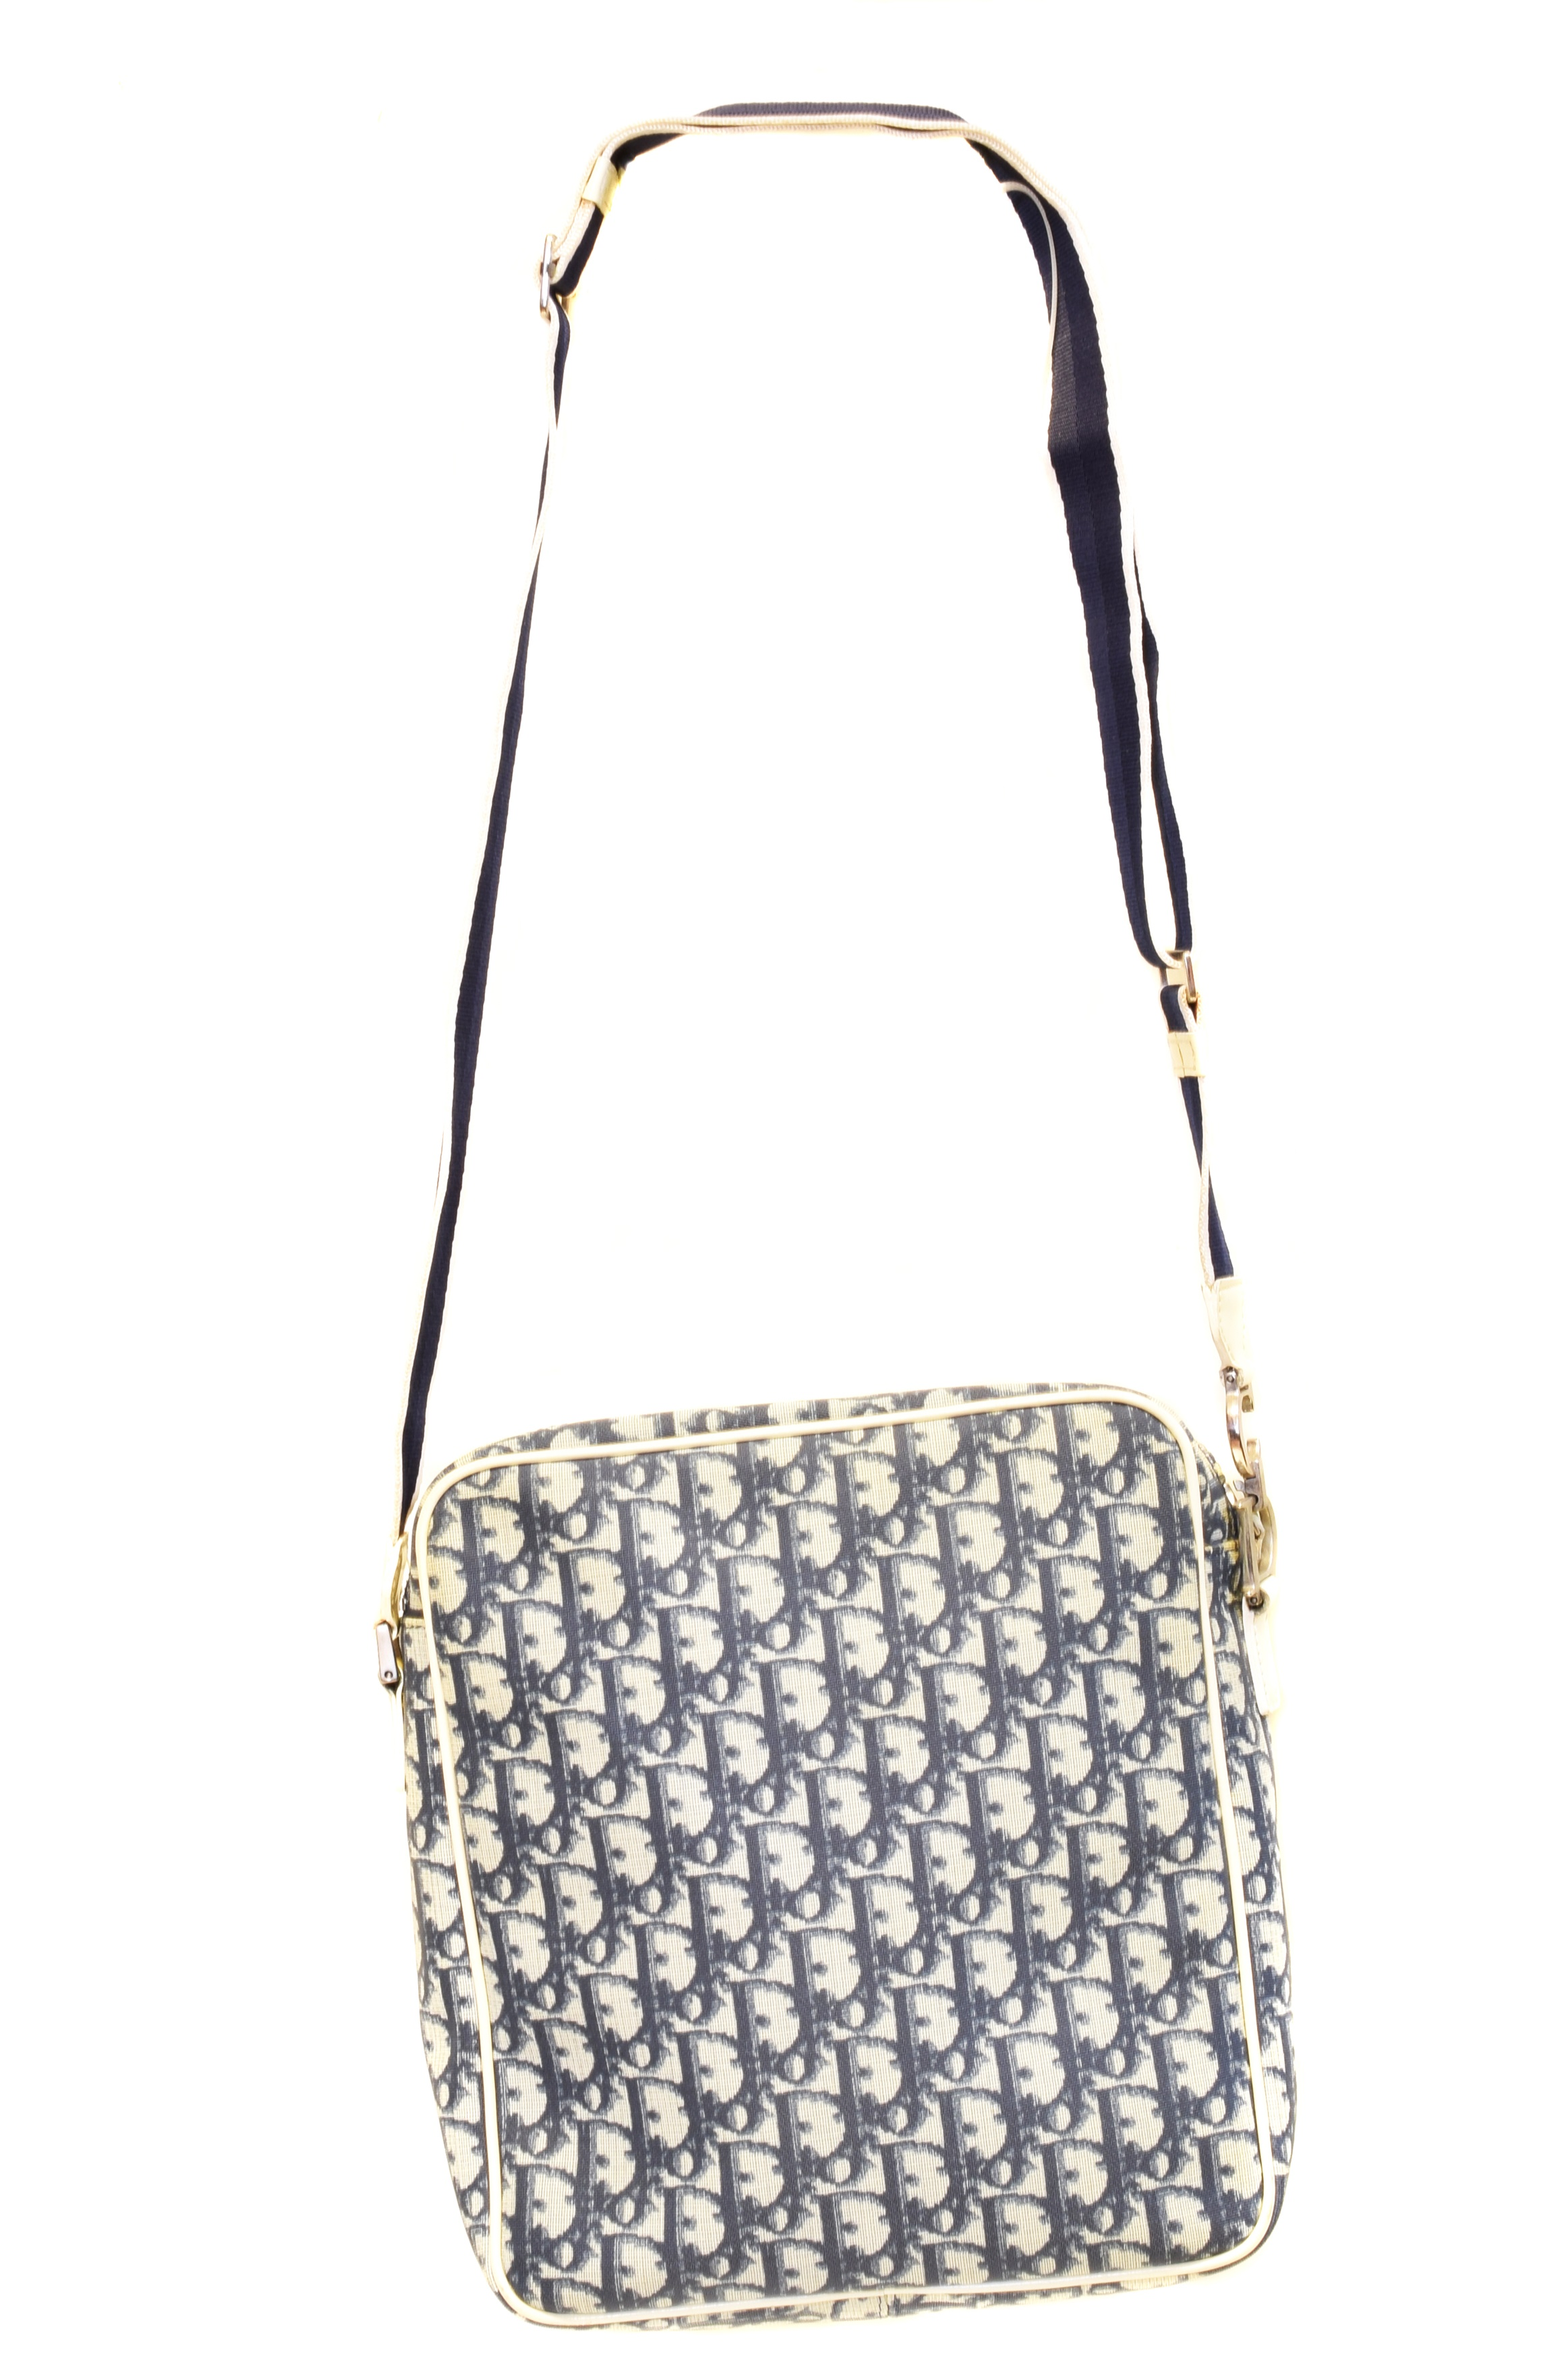 A Dior Crossbody Shoulder Bag, - Image 2 of 2